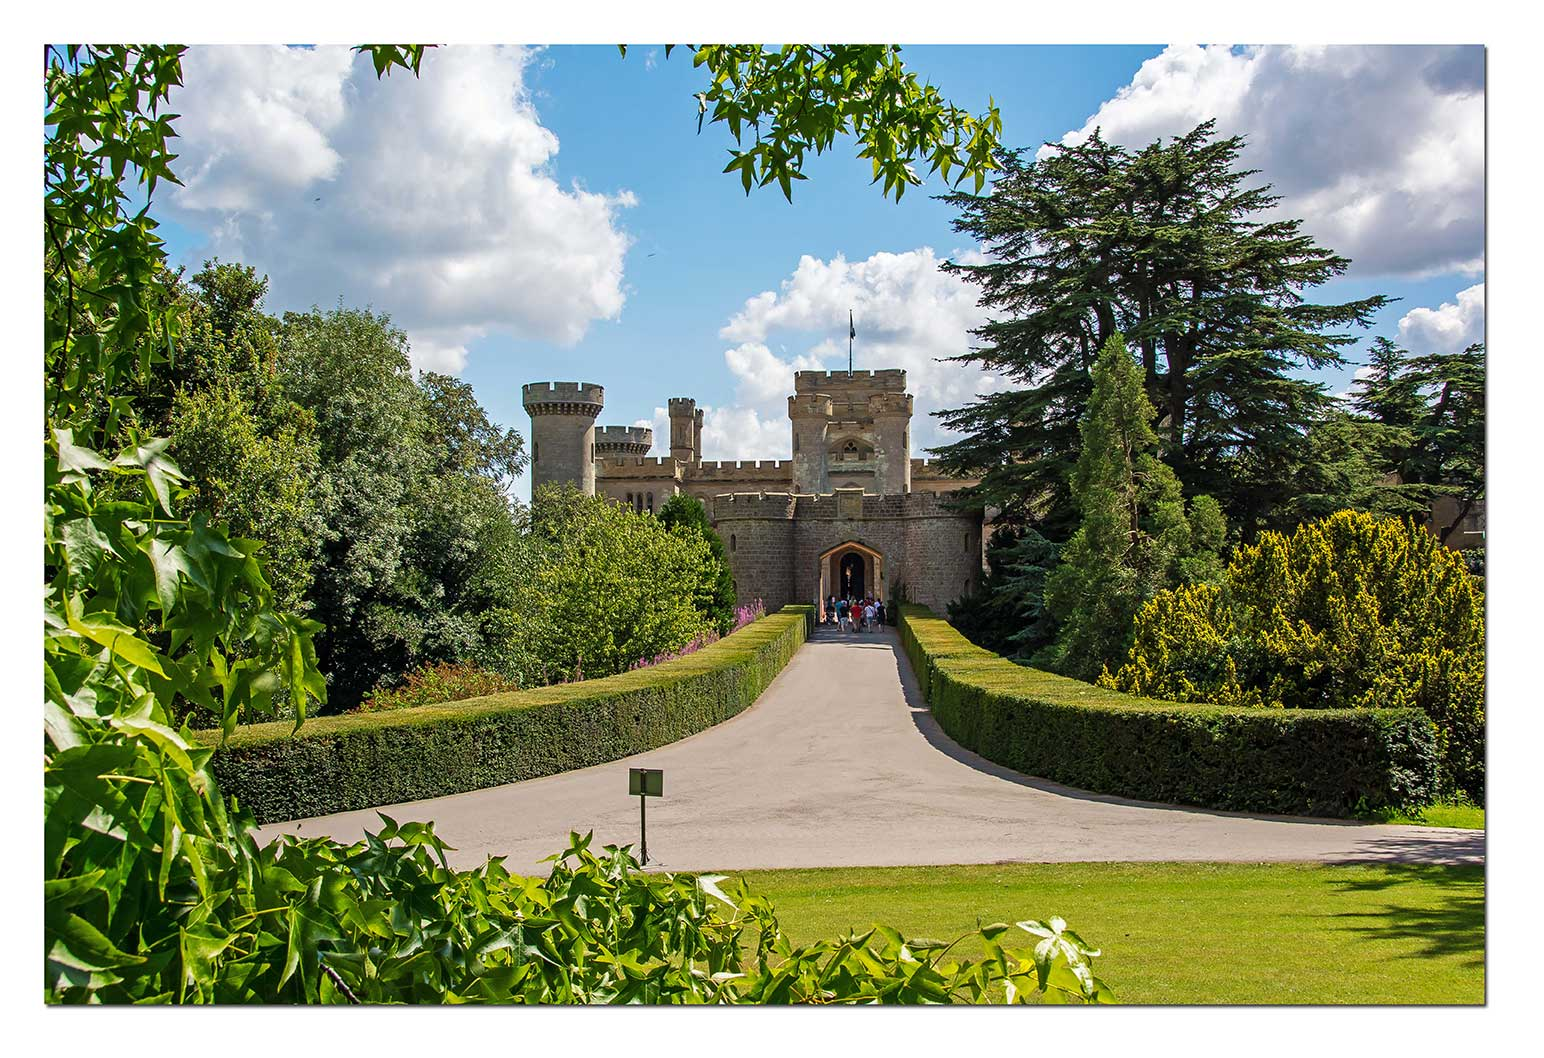 Eastnor Castle is a 19th-century mock or revival castle, two miles from the town of Ledbury in Herefordshire, England, by the village of Eastnor.